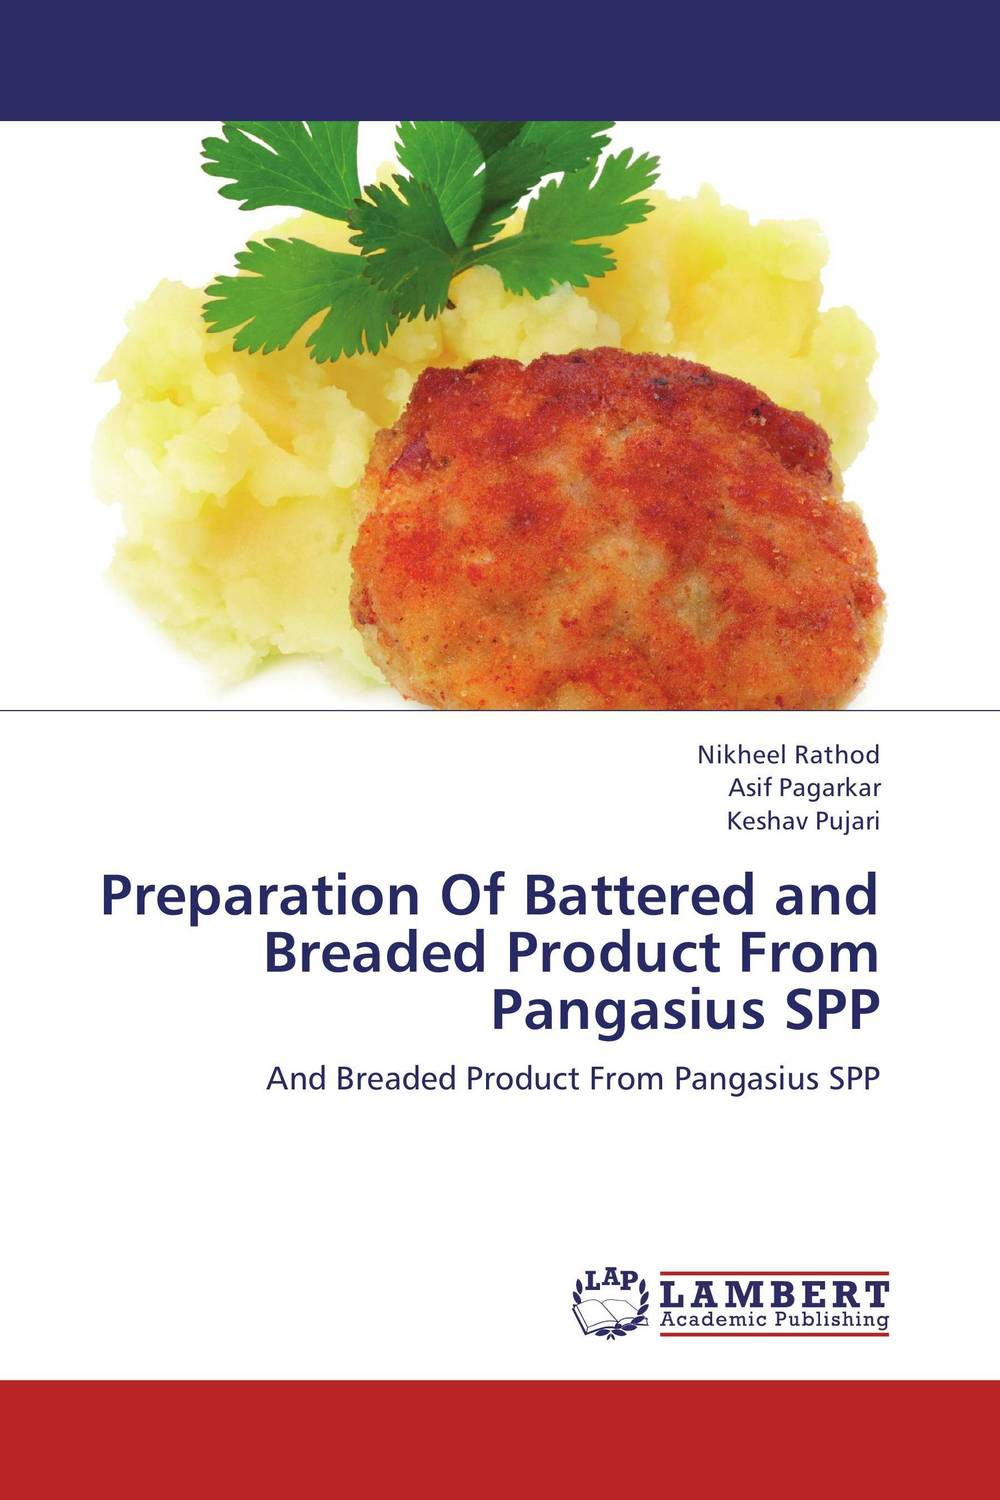 Preparation Of Battered and Breaded Product From Pangasius SPP adding value to the citrus pulp by enzyme biotechnology production